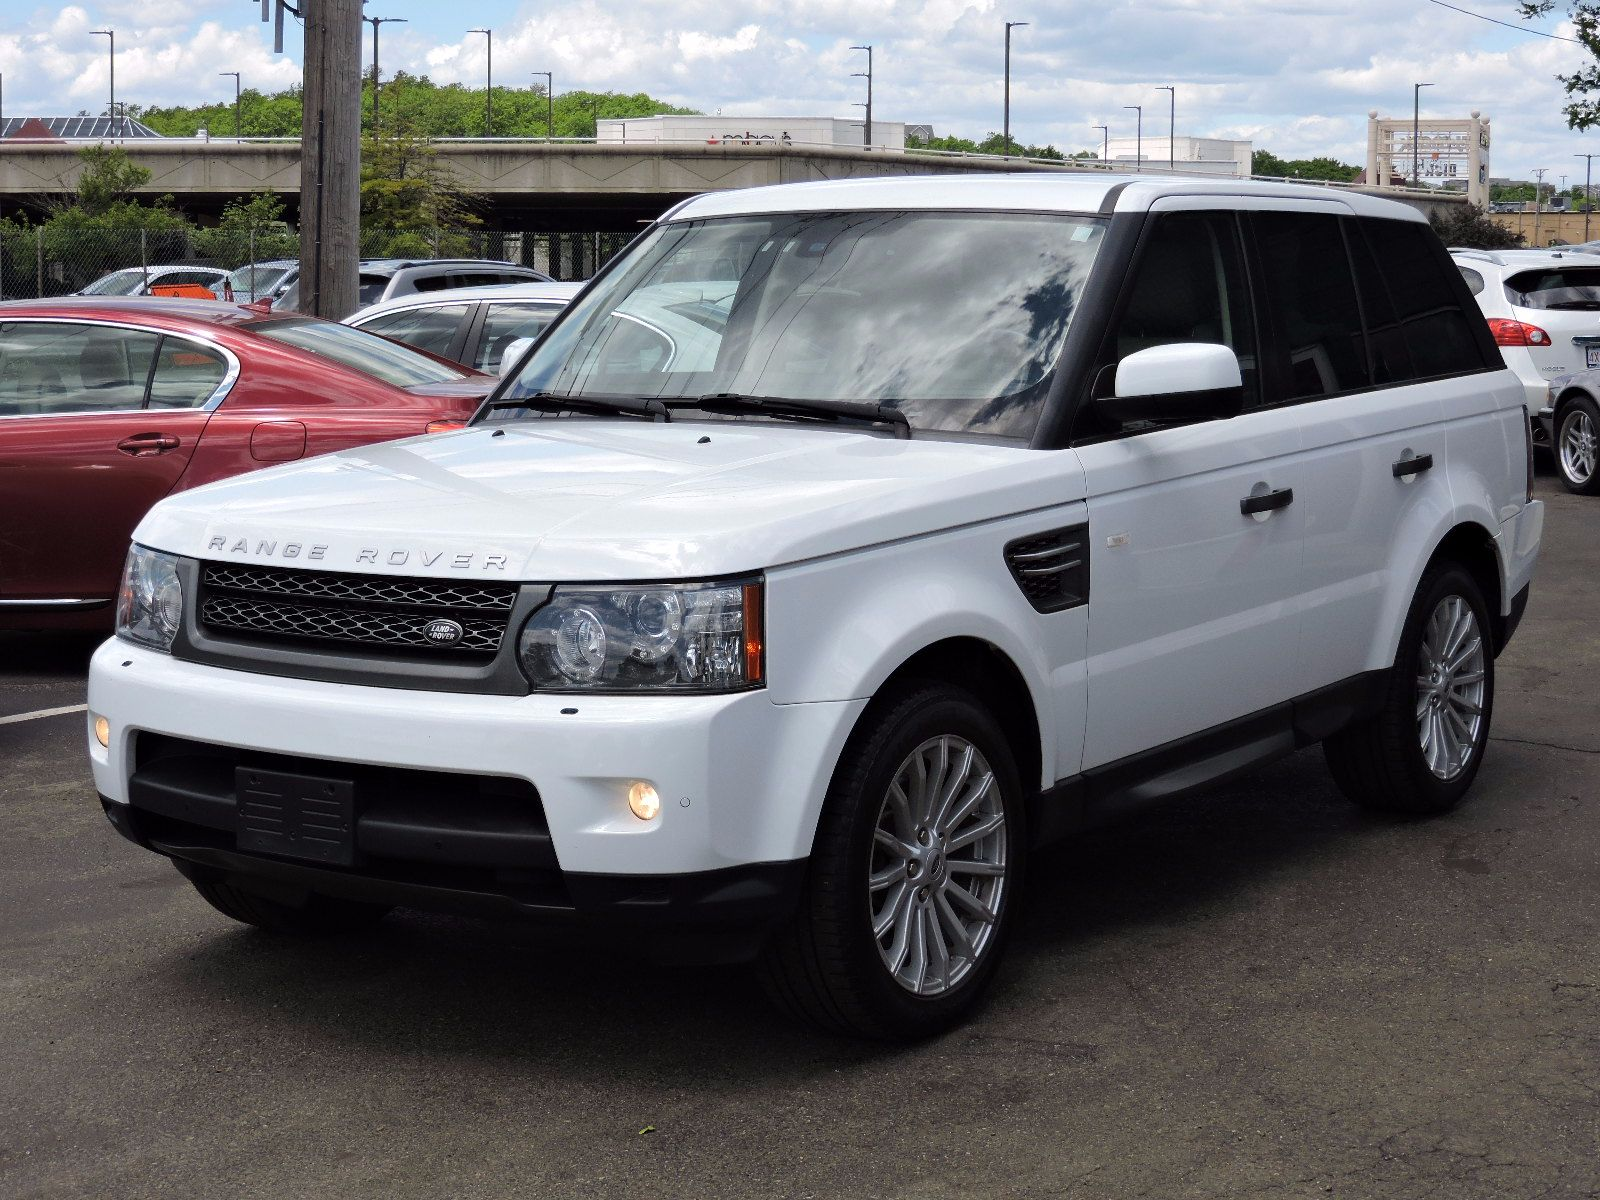 Used 2011 Land Rover Range Rover Sport Hse At Saugus Auto Mall